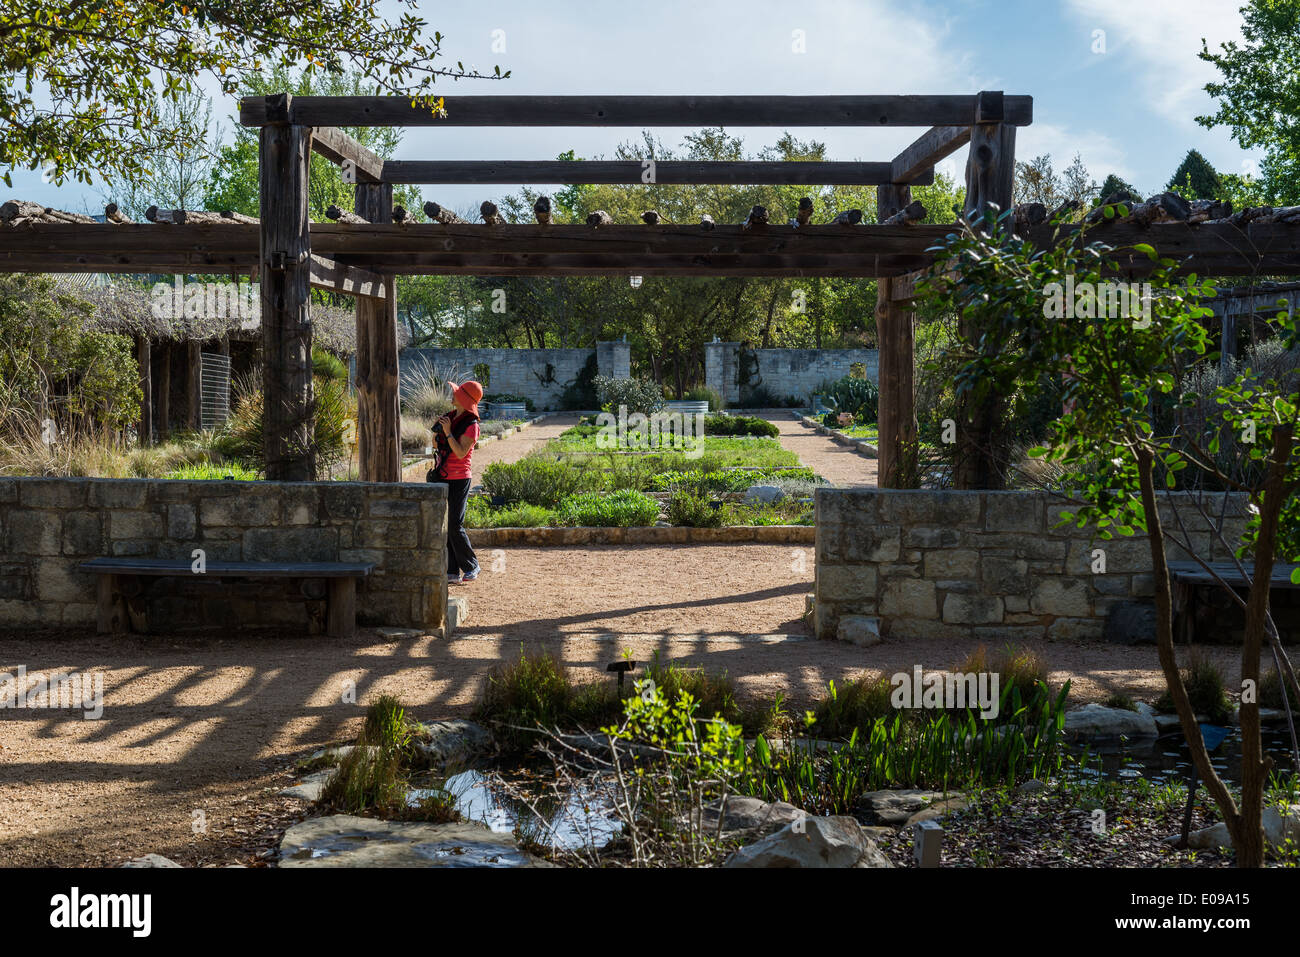 american southwest garden design at the lady bird johnson wildflower center austin texas usa